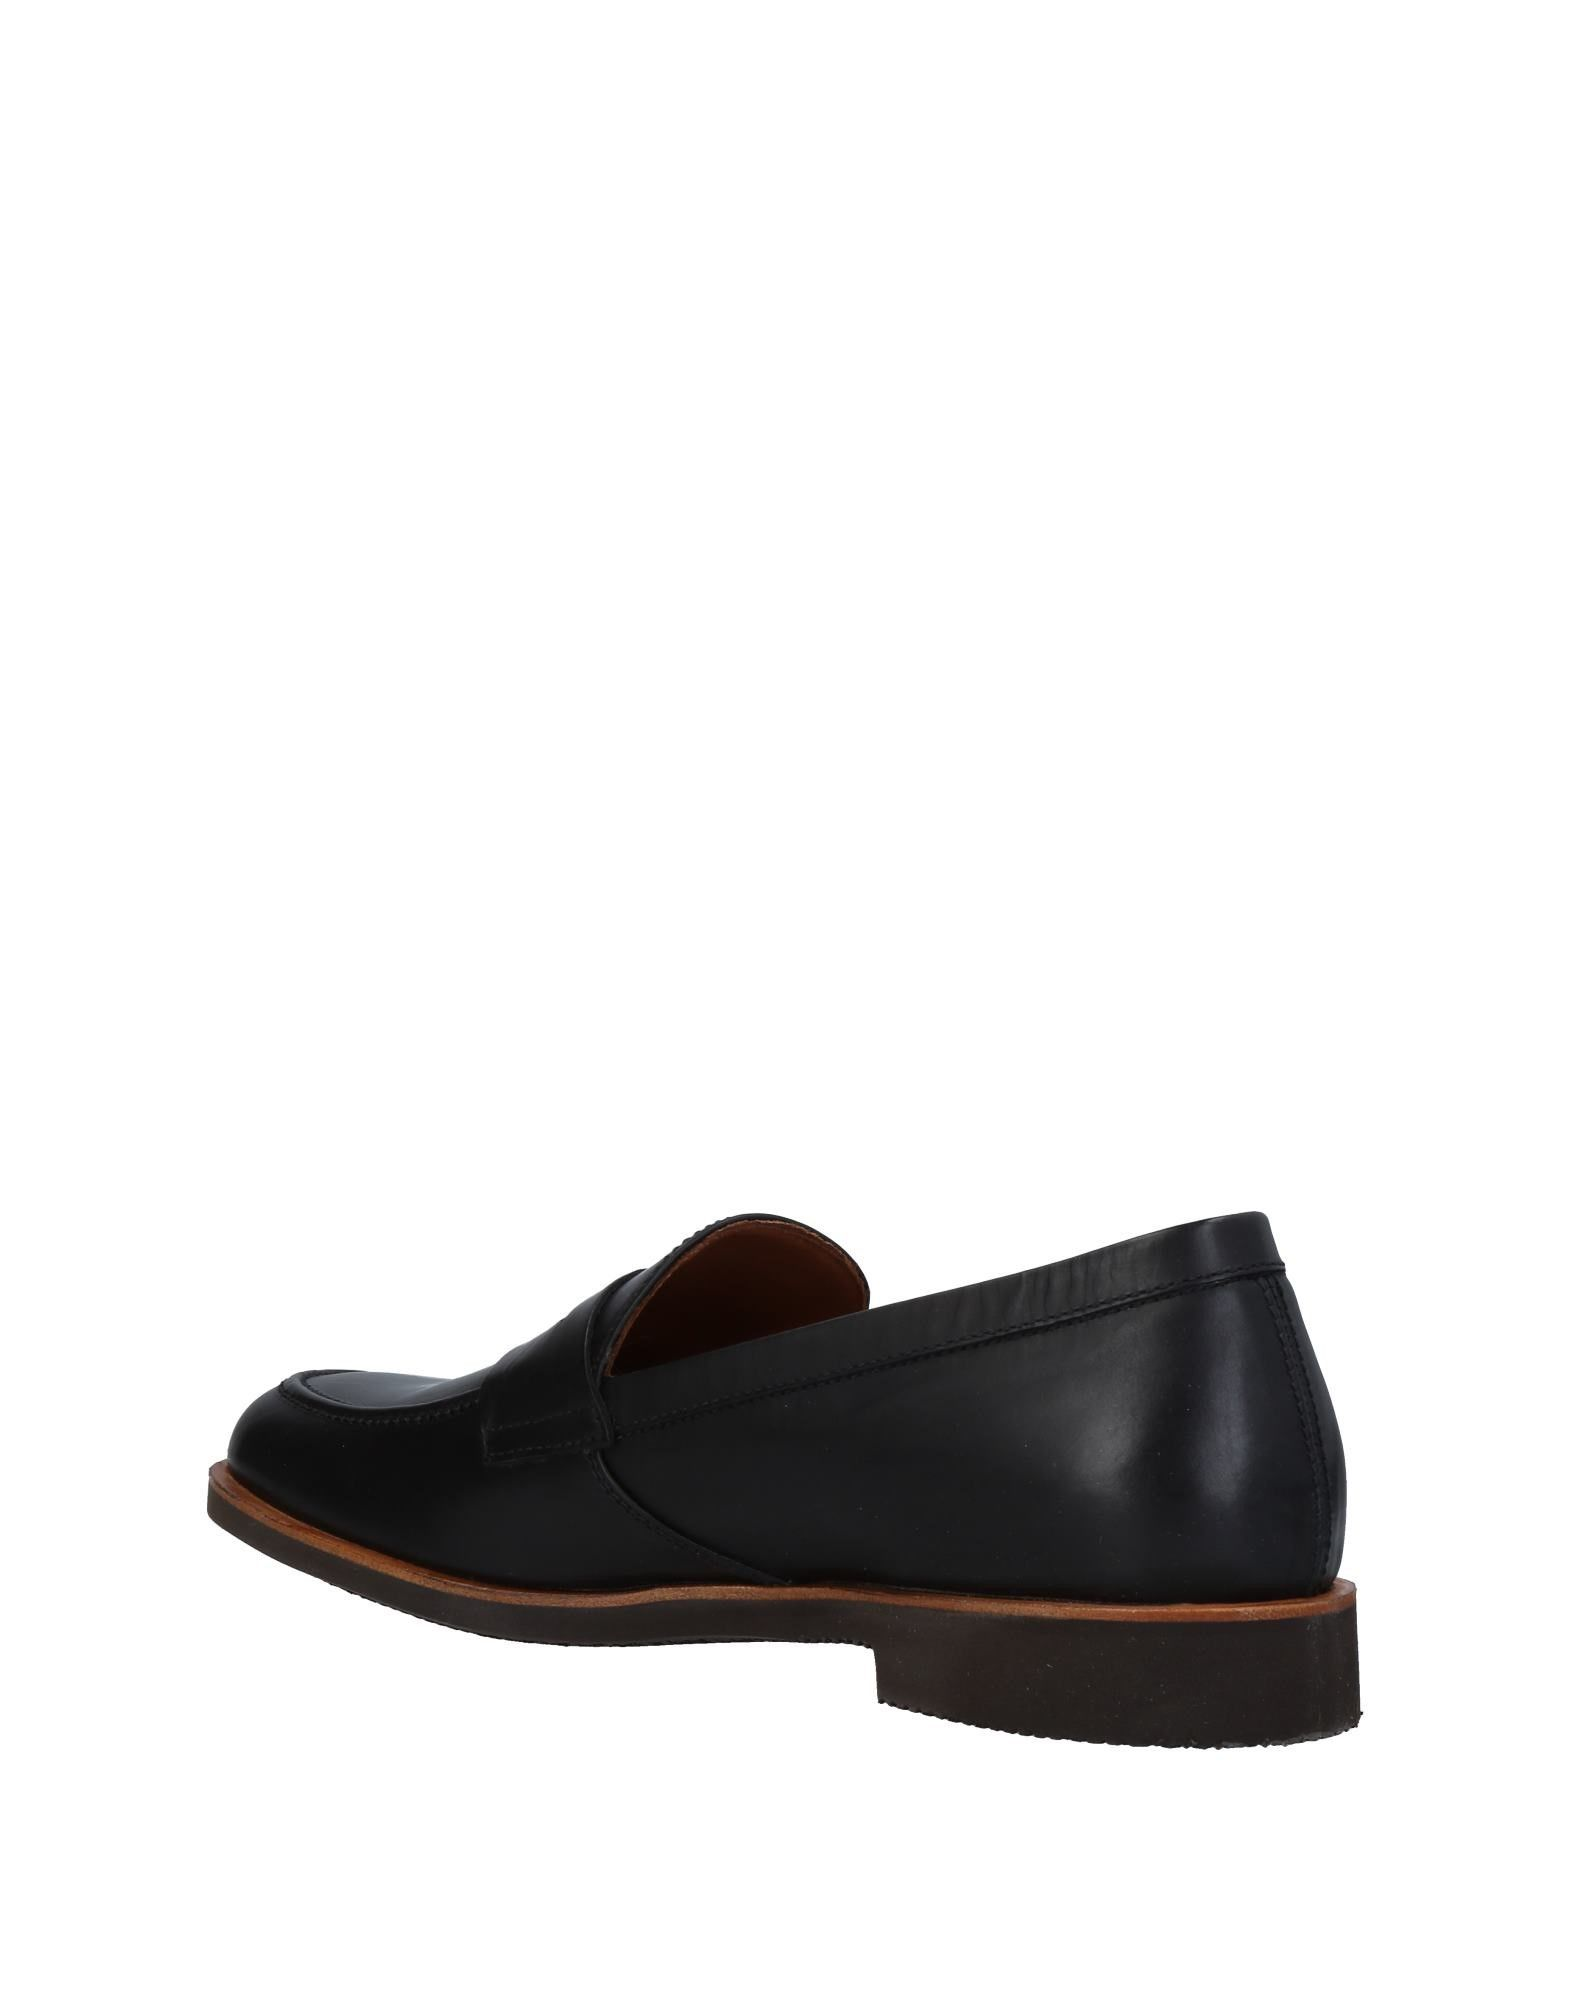 Fratelli Rossetti Rossetti Rossetti Loafers - Men Fratelli Rossetti Loafers online on  Australia - 11440648MC 553897